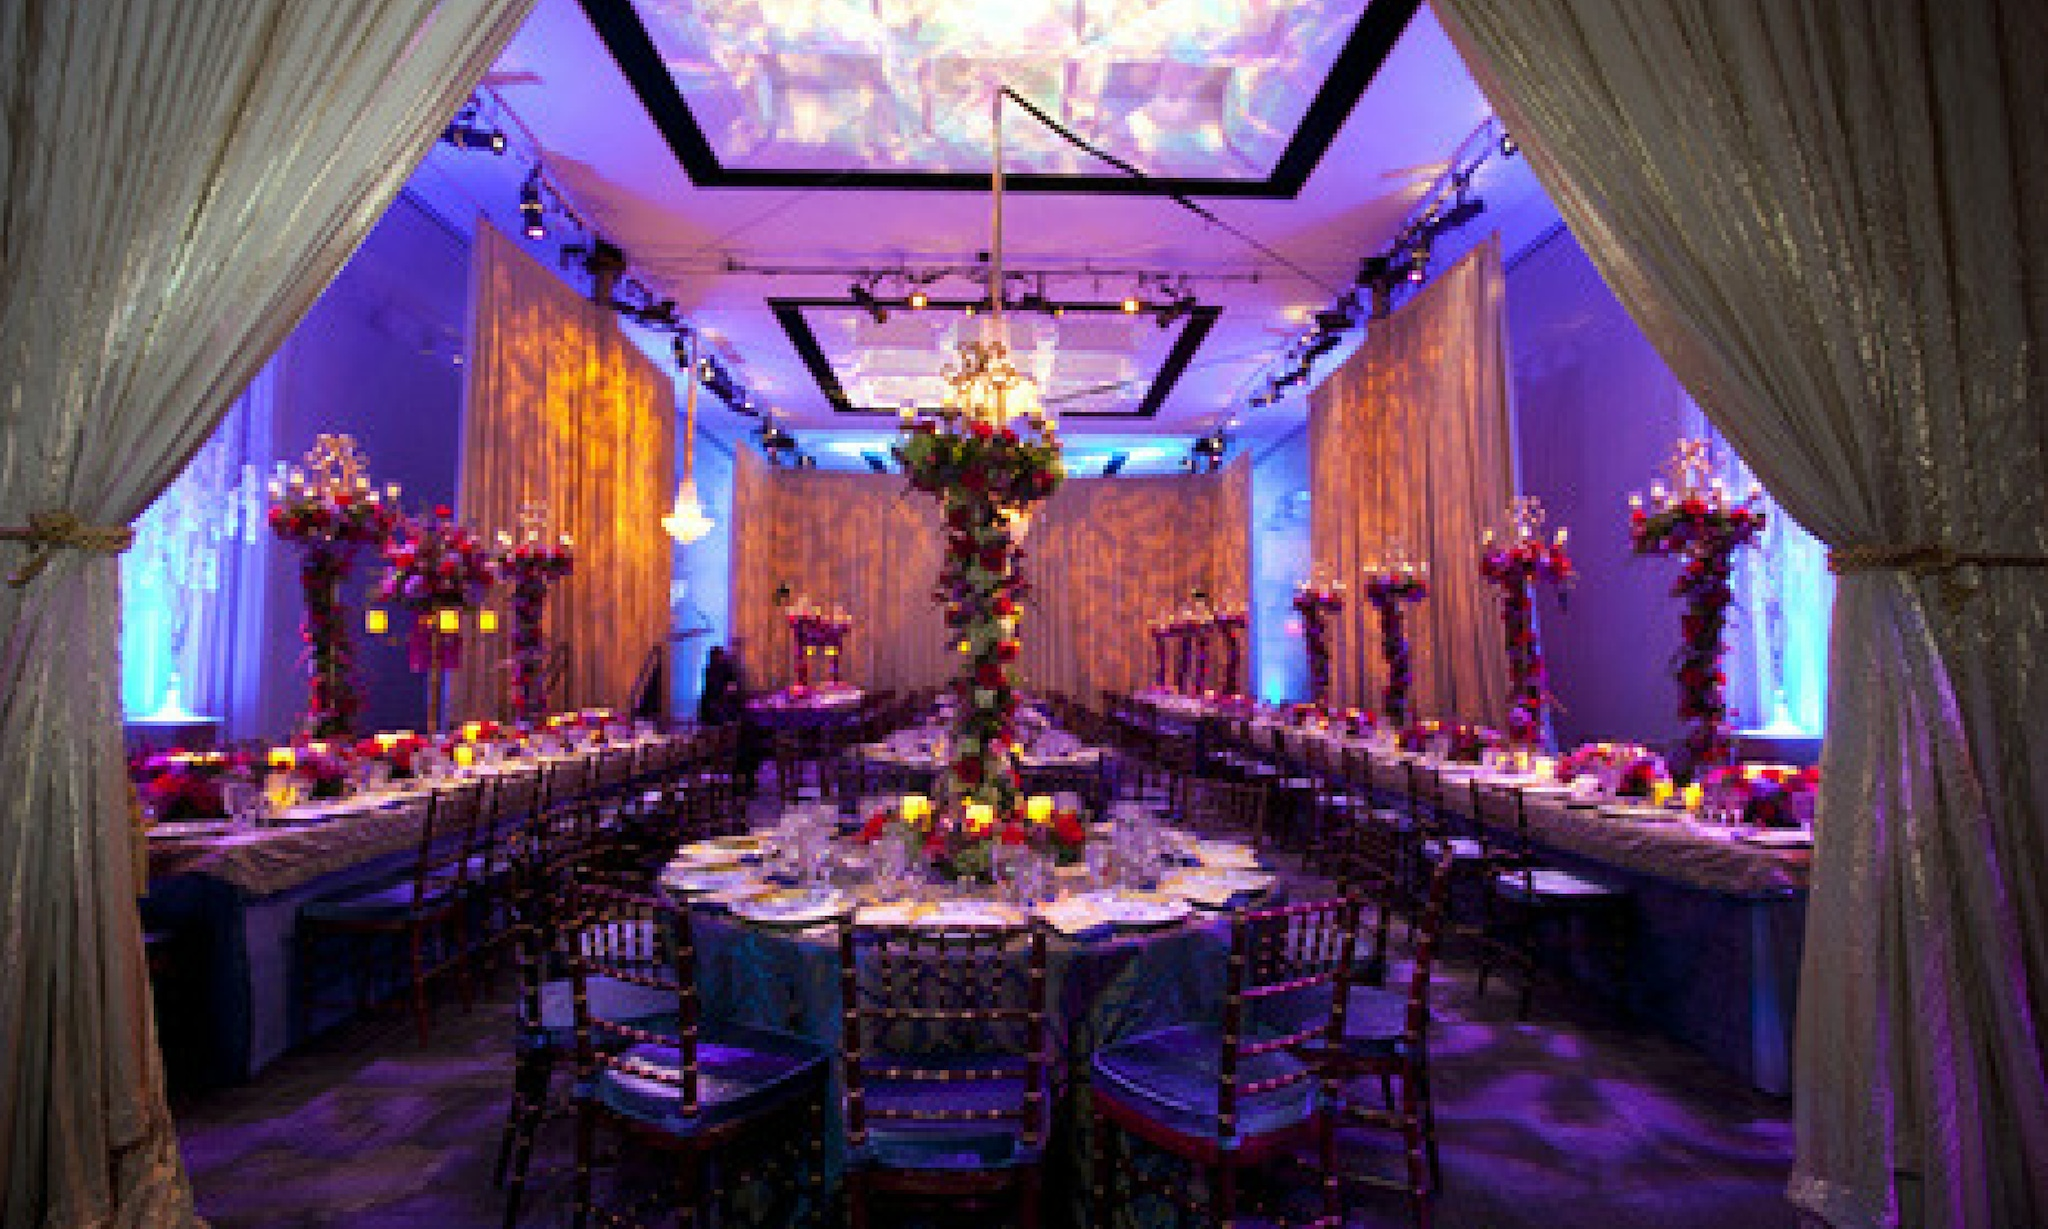 white draped entrance leads into violet-uplit event space at landmark the kennedy center in washington, d.c.